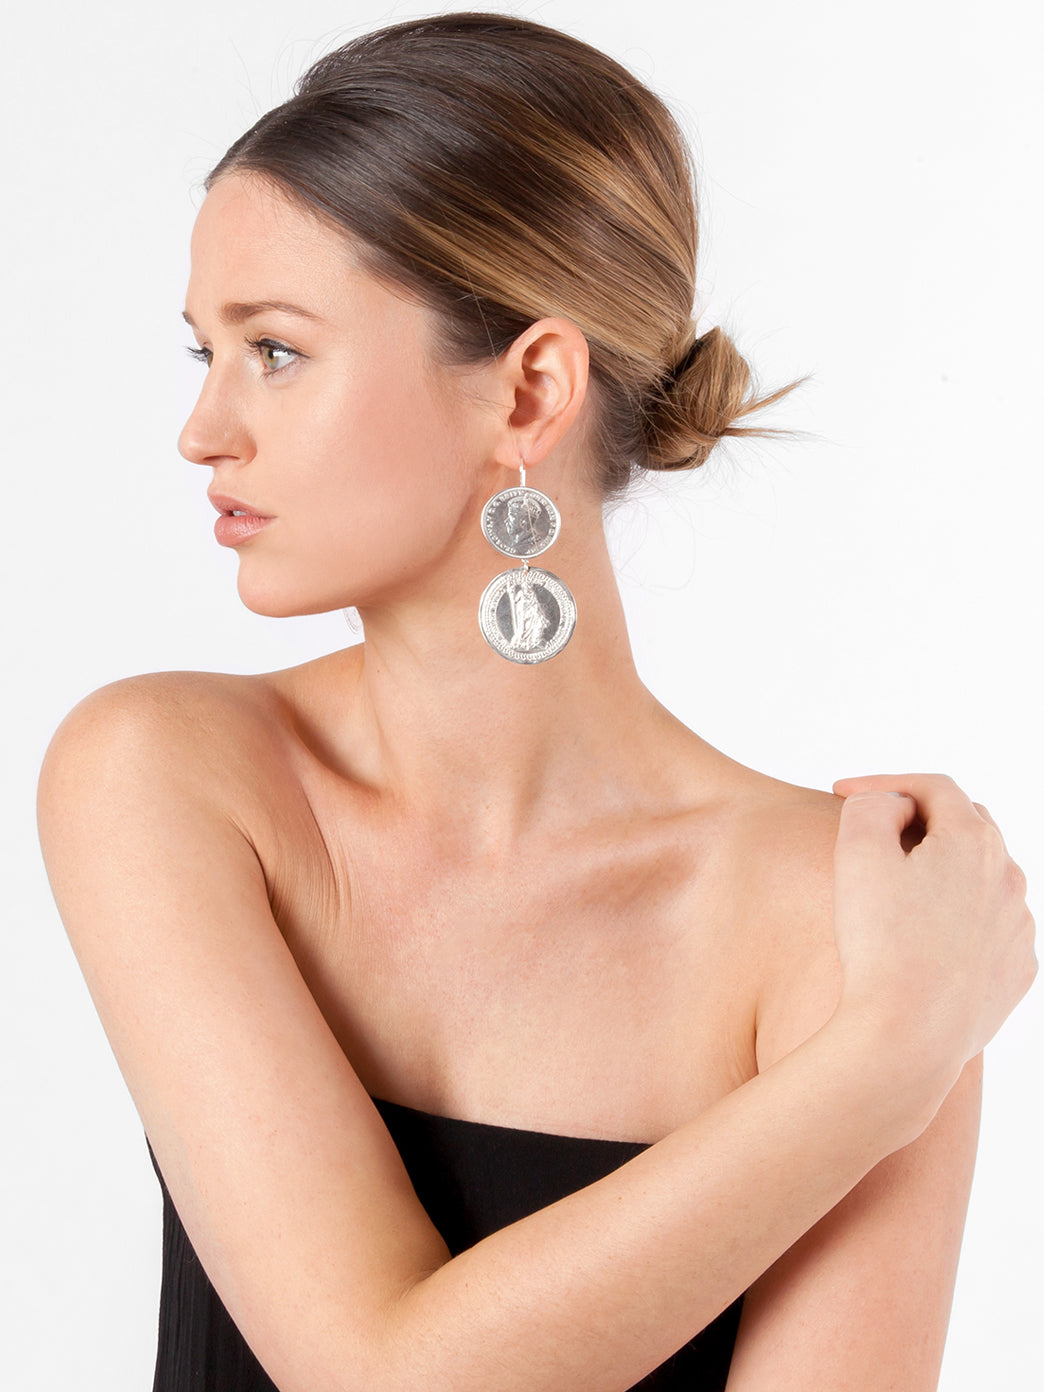 Fiorina Jewellery Monster Double Coin Earrings Model Side View